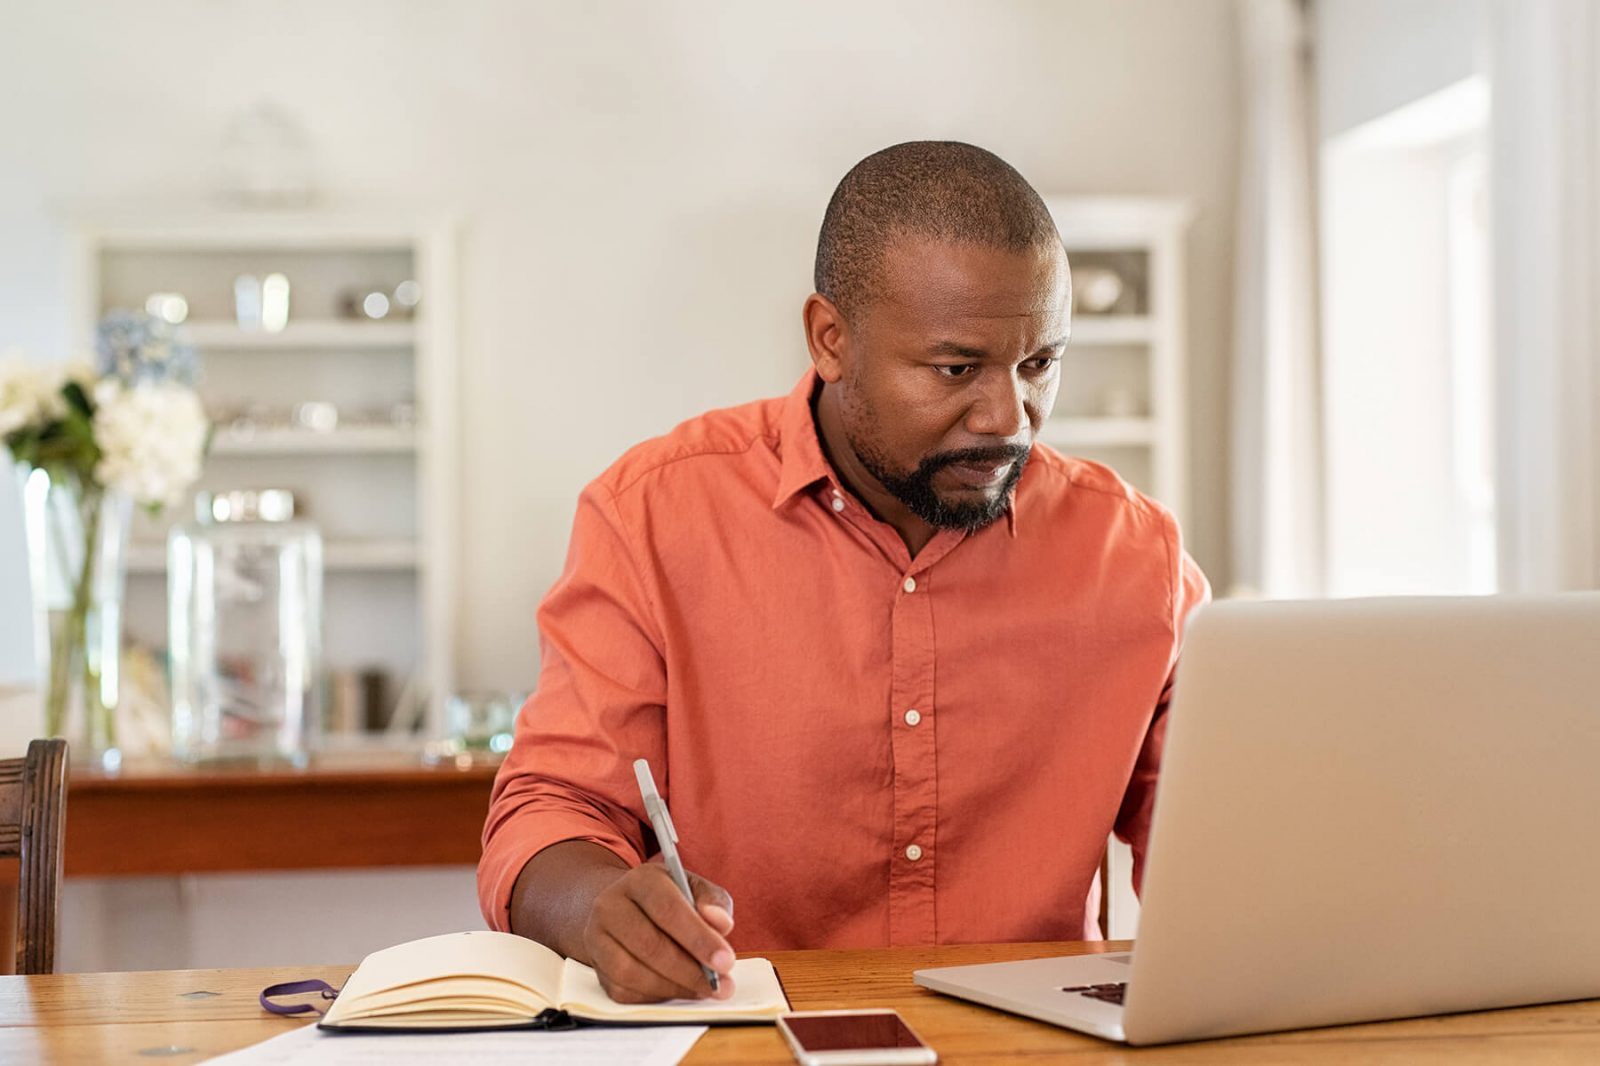 man studying from laptop at home